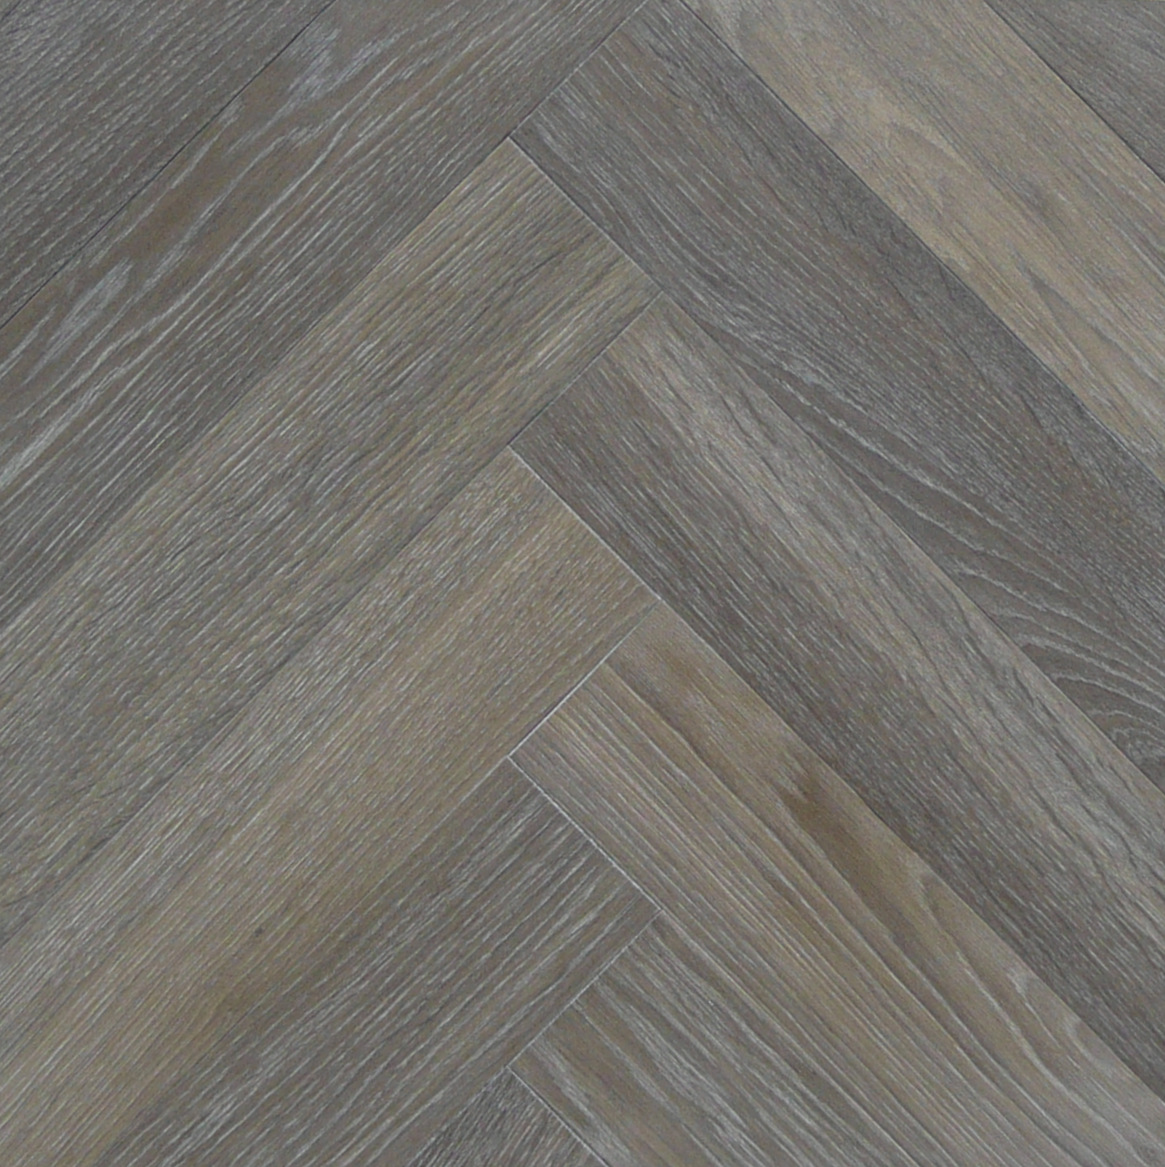 Herringbone - St. Andrews